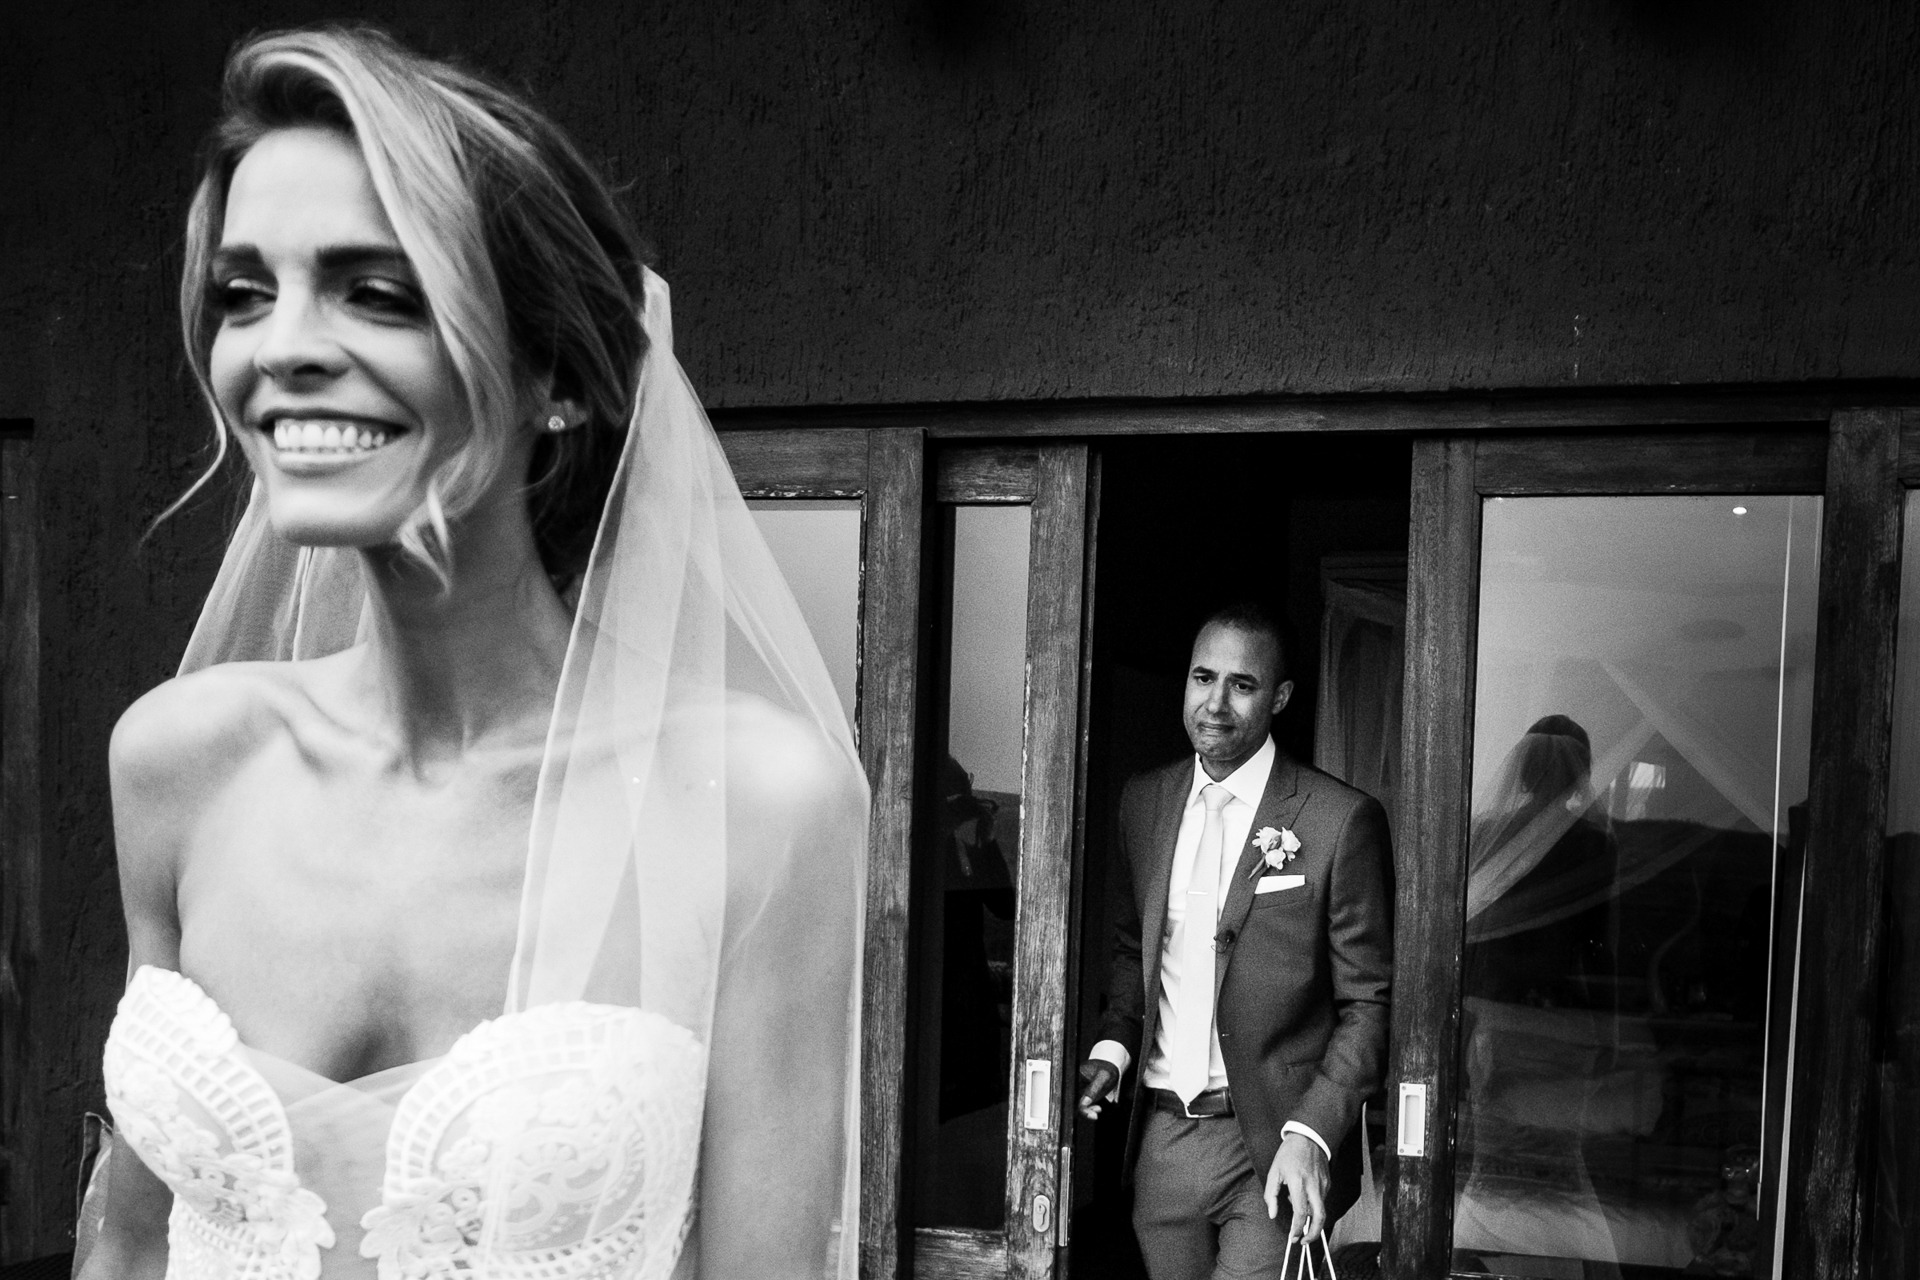 The couple decided on a very emotional first look prior to their African wedding ceremony at Nambiti Hills, KwaZulu Natal Midlands, South Africa